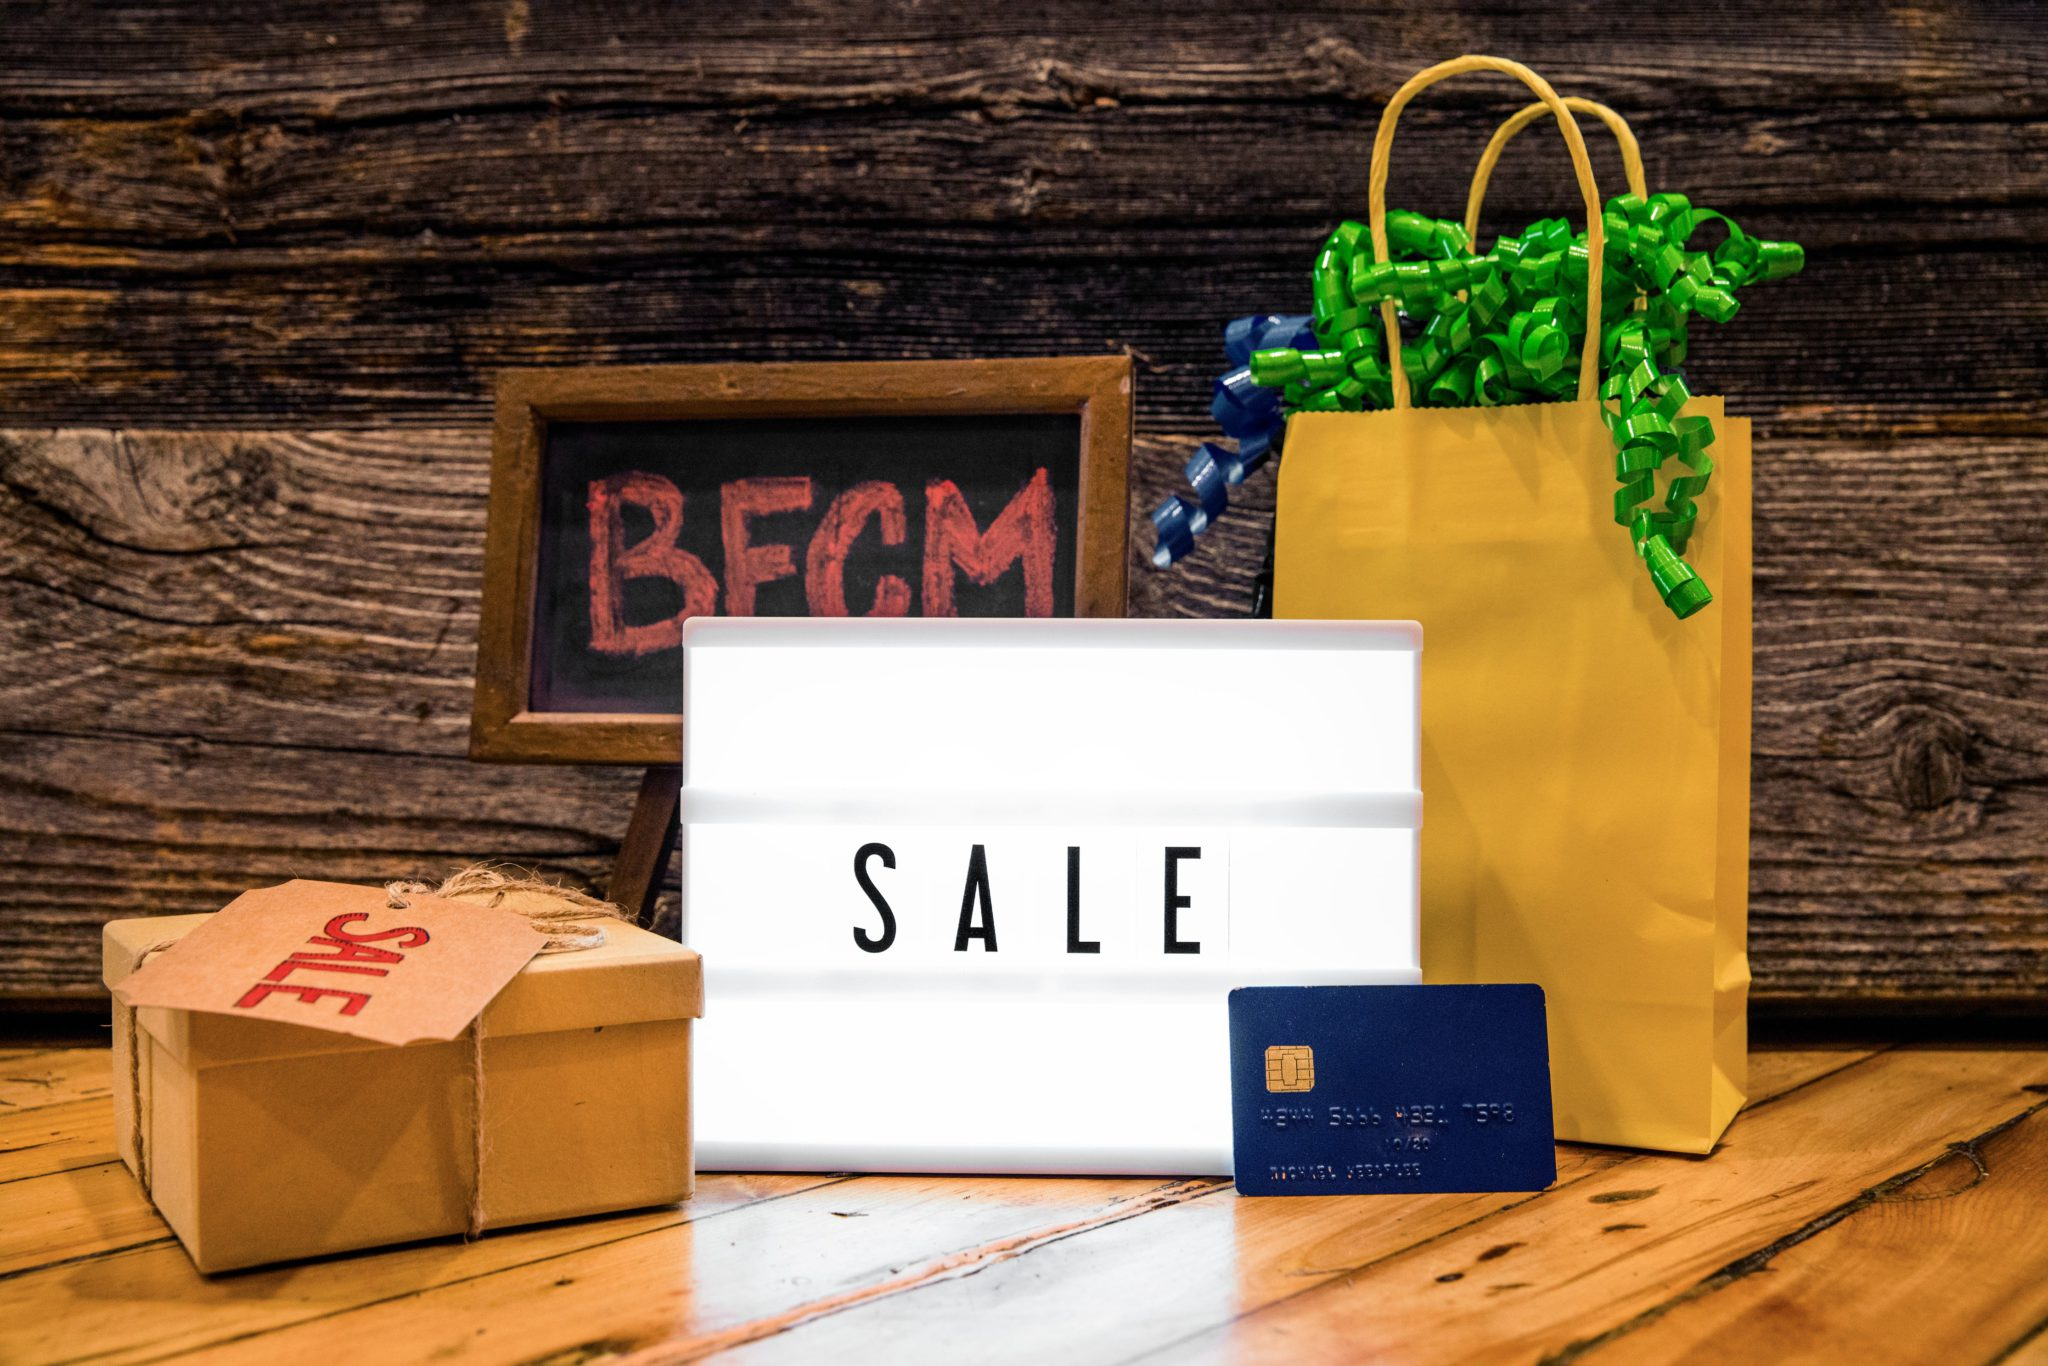 sale signs - 10 Best Business Deals for Black Friday, Cyber Monday, and Holiday Sales In 2019